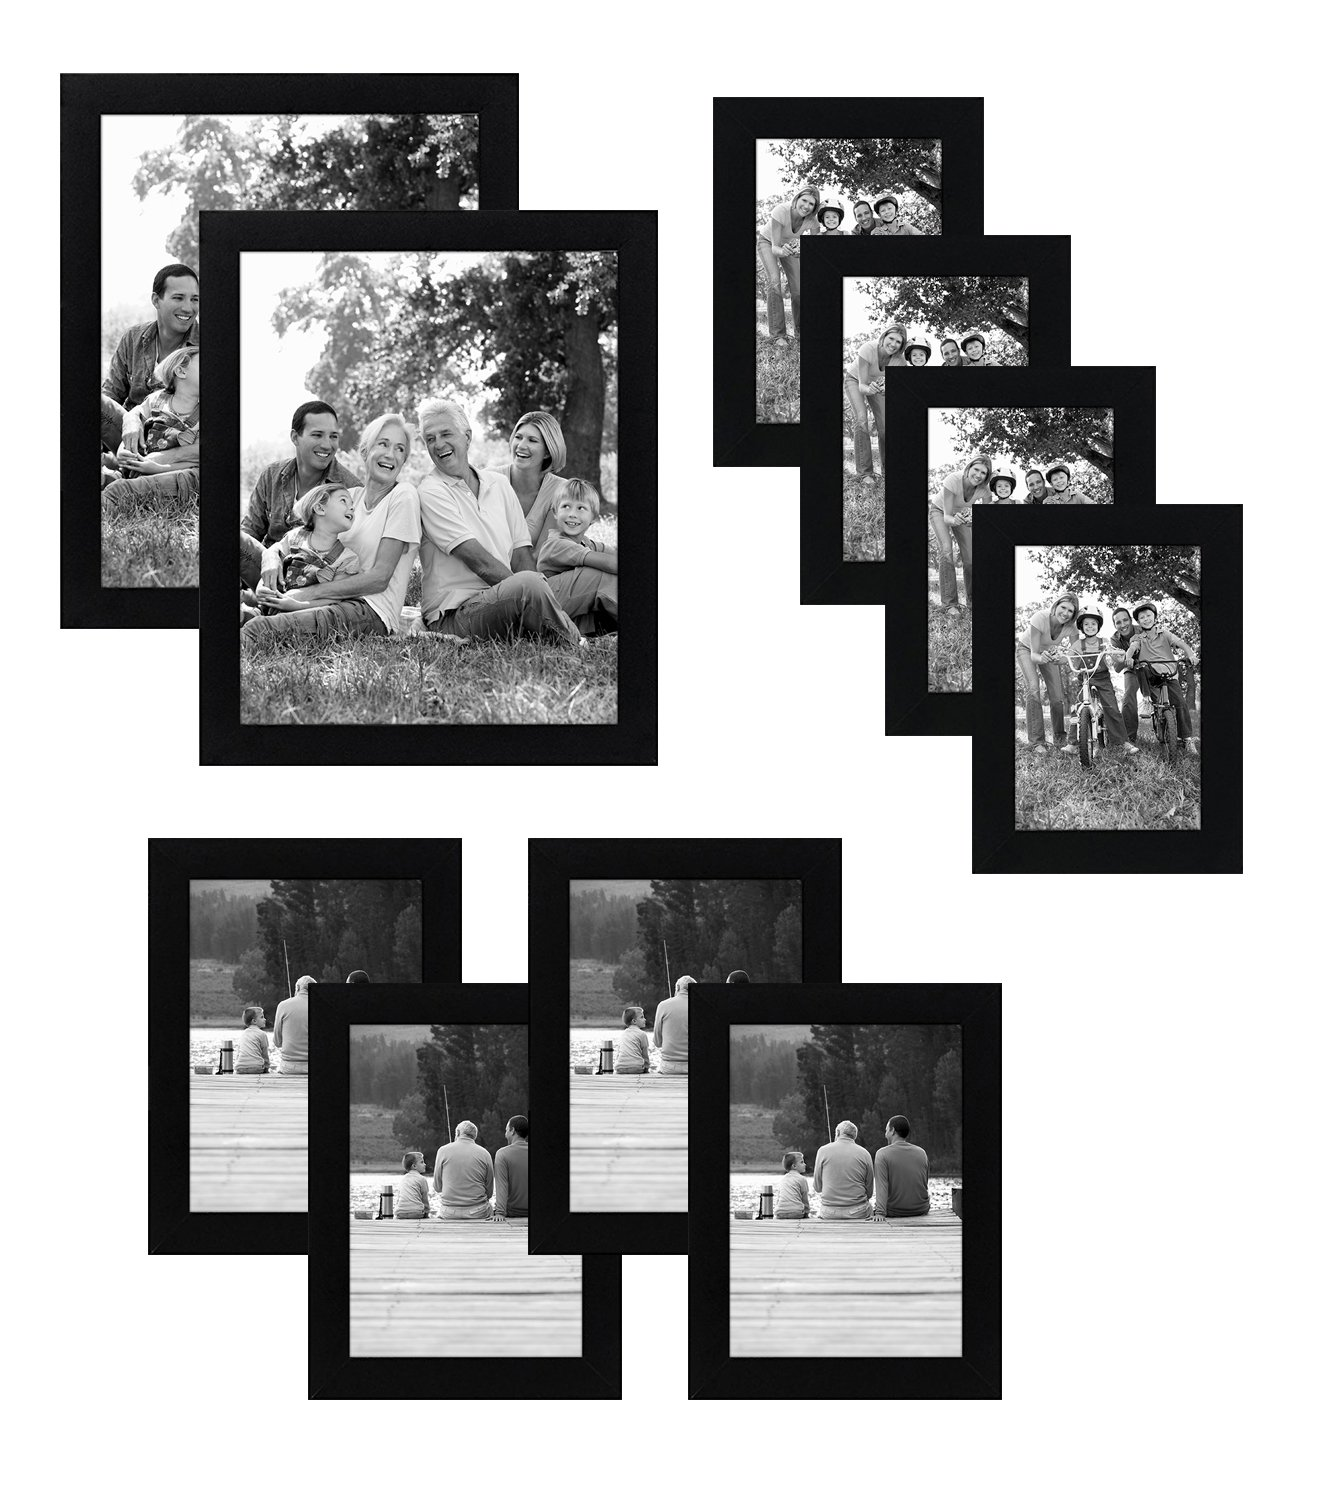 Americanflat 10-Piece Multi Pack; Includes 8x10, 5x7, and 4x6 Frames, Gallery Set, Black by Americanflat